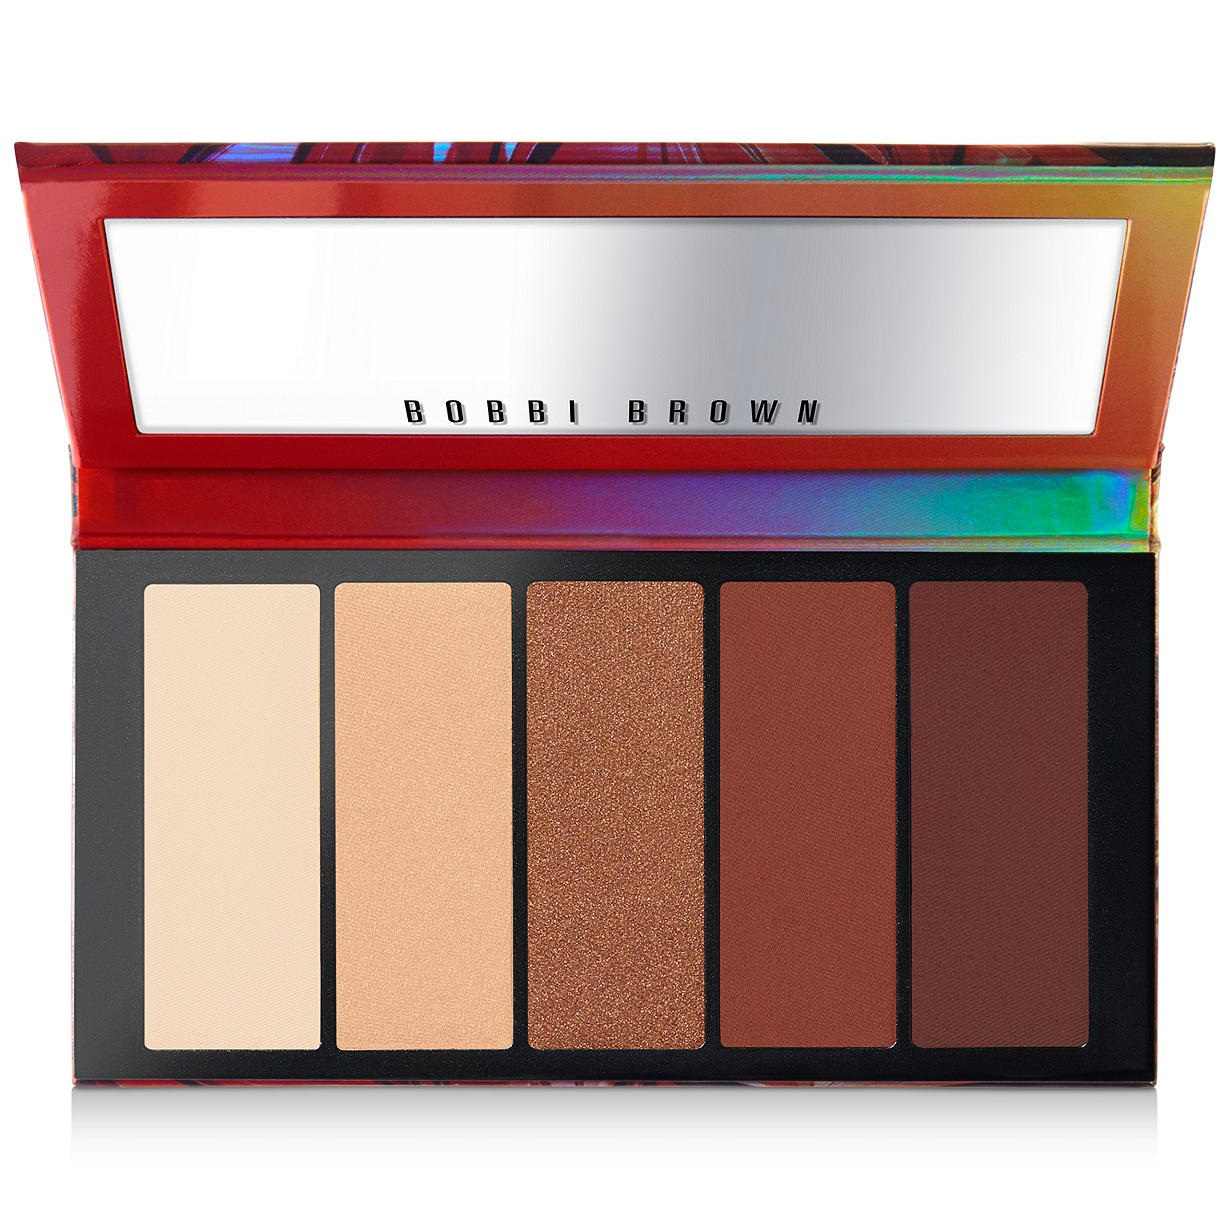 Bobbi Brown Fever Dream Eyeshadow Palette